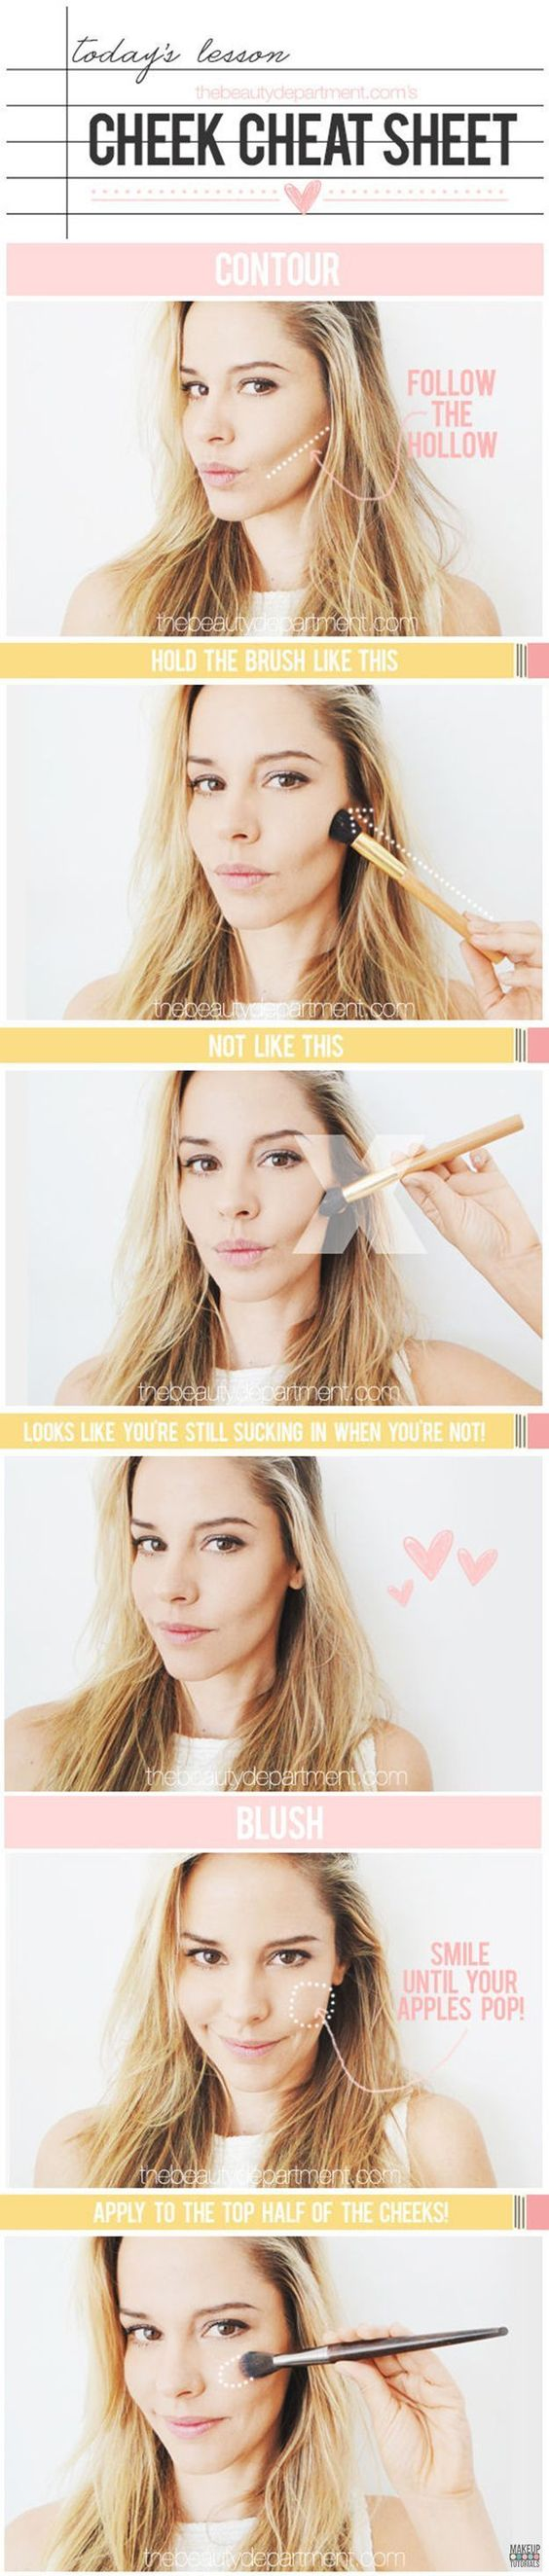 59 DIY Beauty Tutorials | Beauty Hacks You Need To Know About by Makeup Tutorials at makeuptutorials.c...: